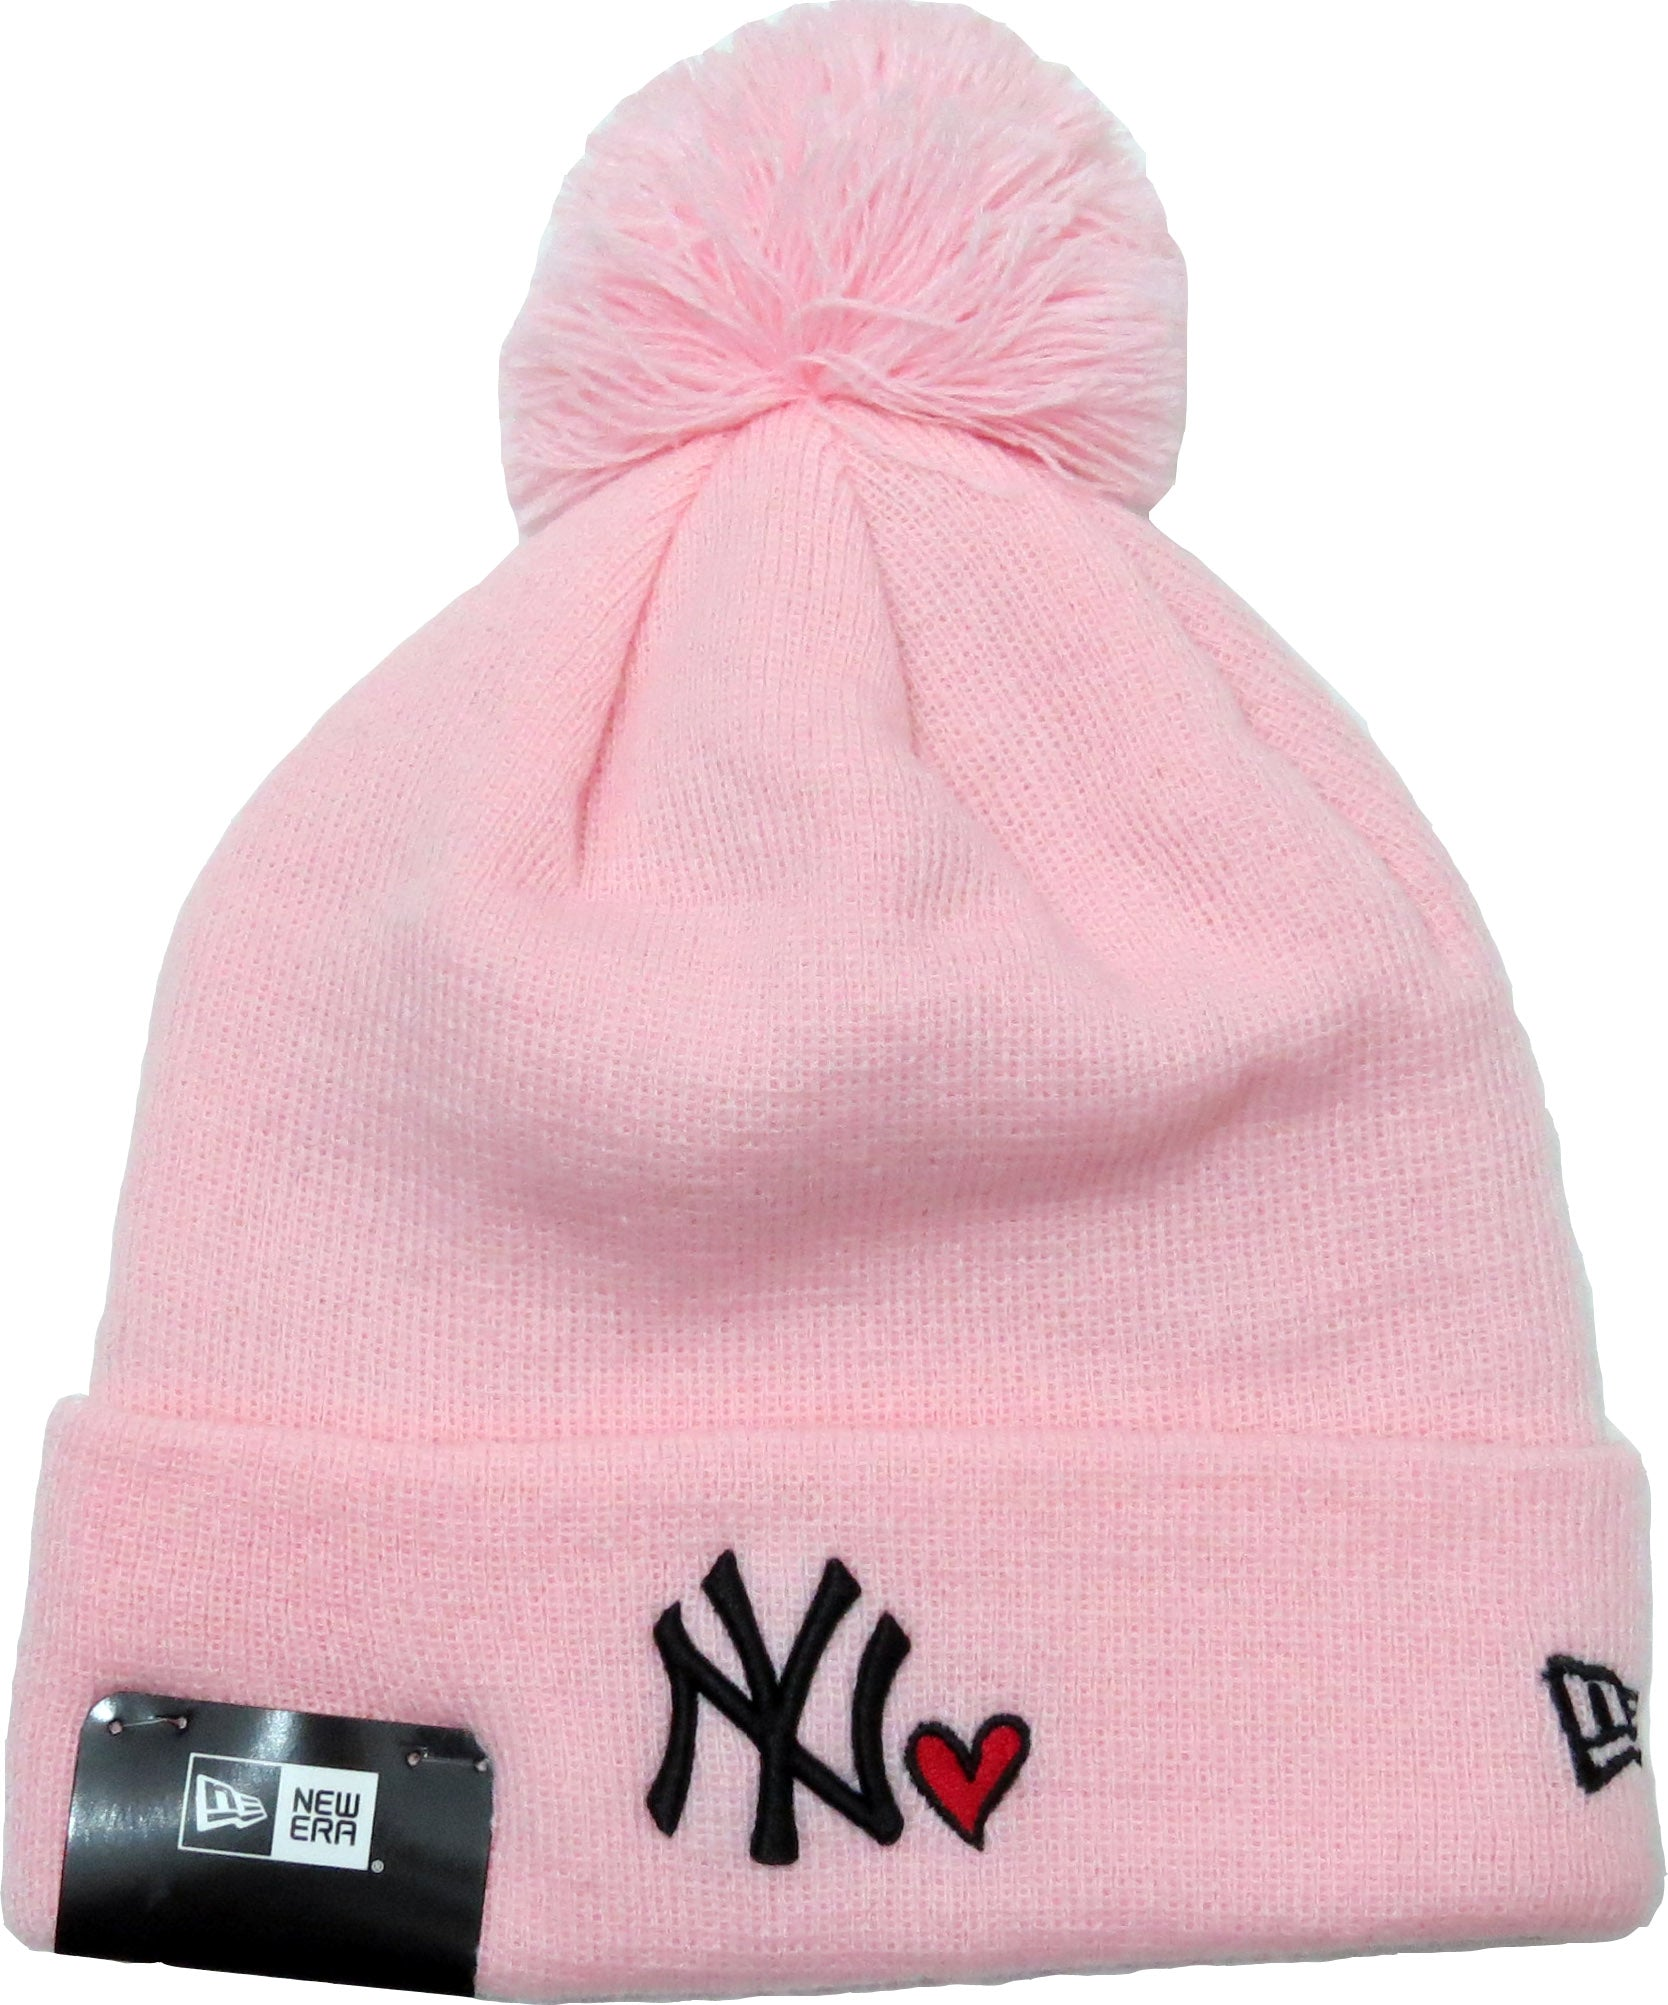 newest collection 618b4 03ddf NY Yankees New Era Womens Heart Knit Pink Bobble Hat – lovemycap